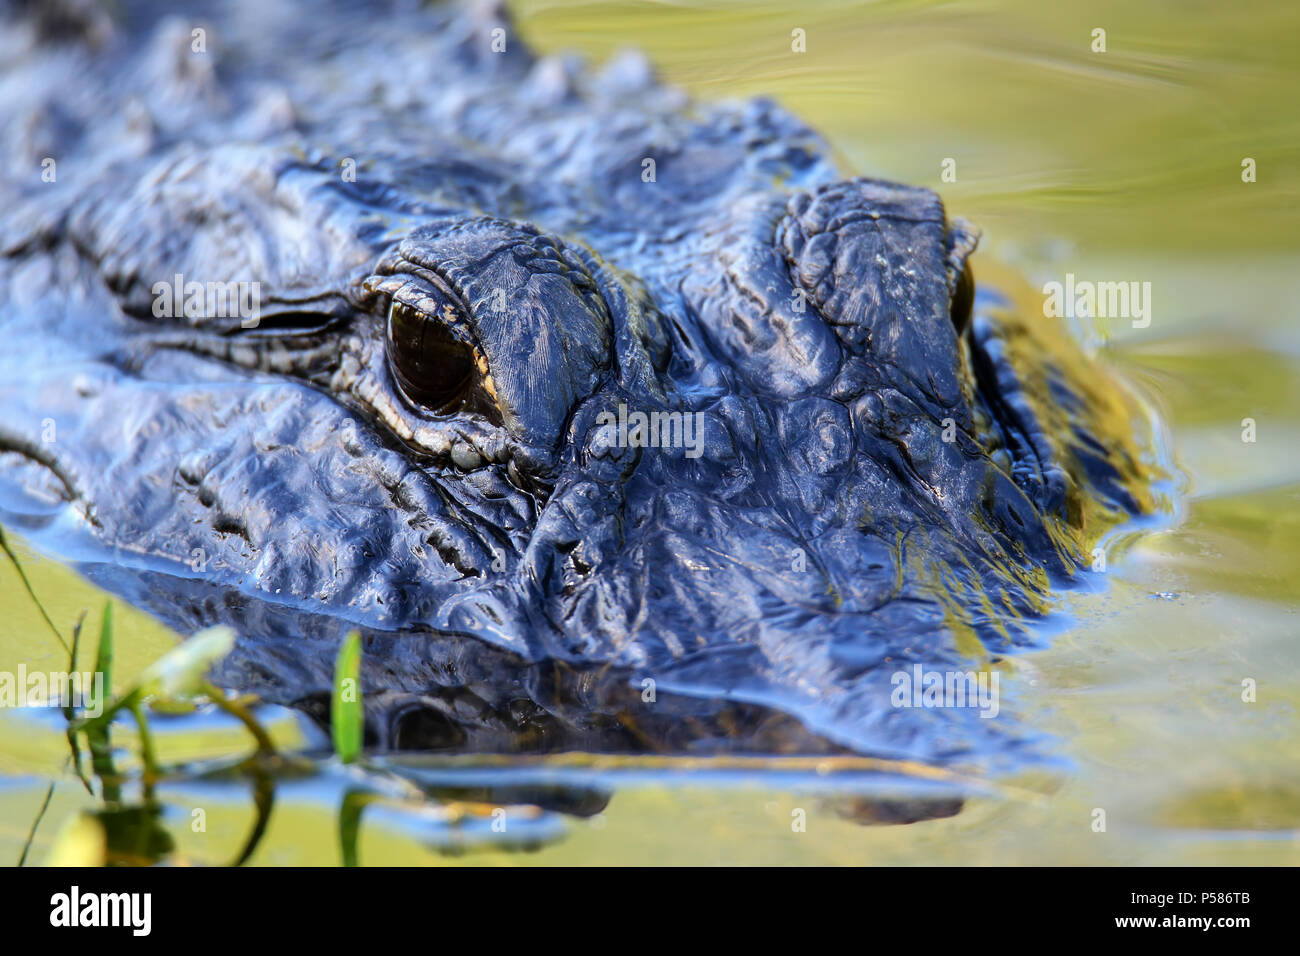 Portrait of Alligator (Alligator mississippiensis) floating in water - Stock Image